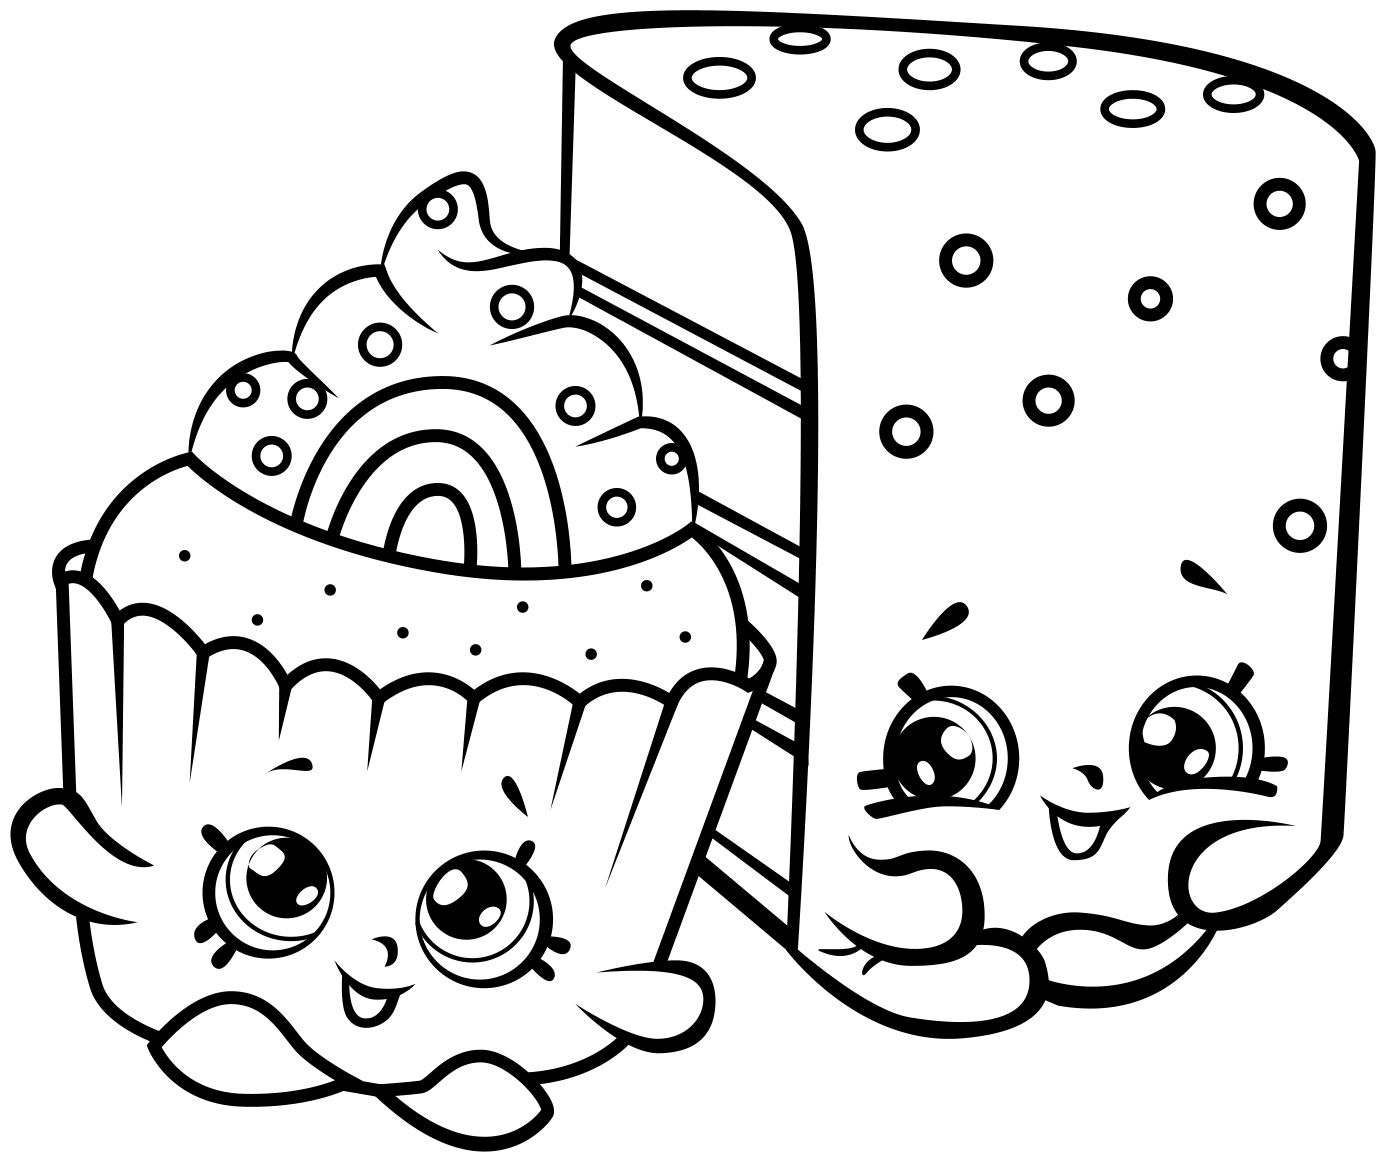 Coloring Printable Mped Coloring Page Printable 19845 Shopkins